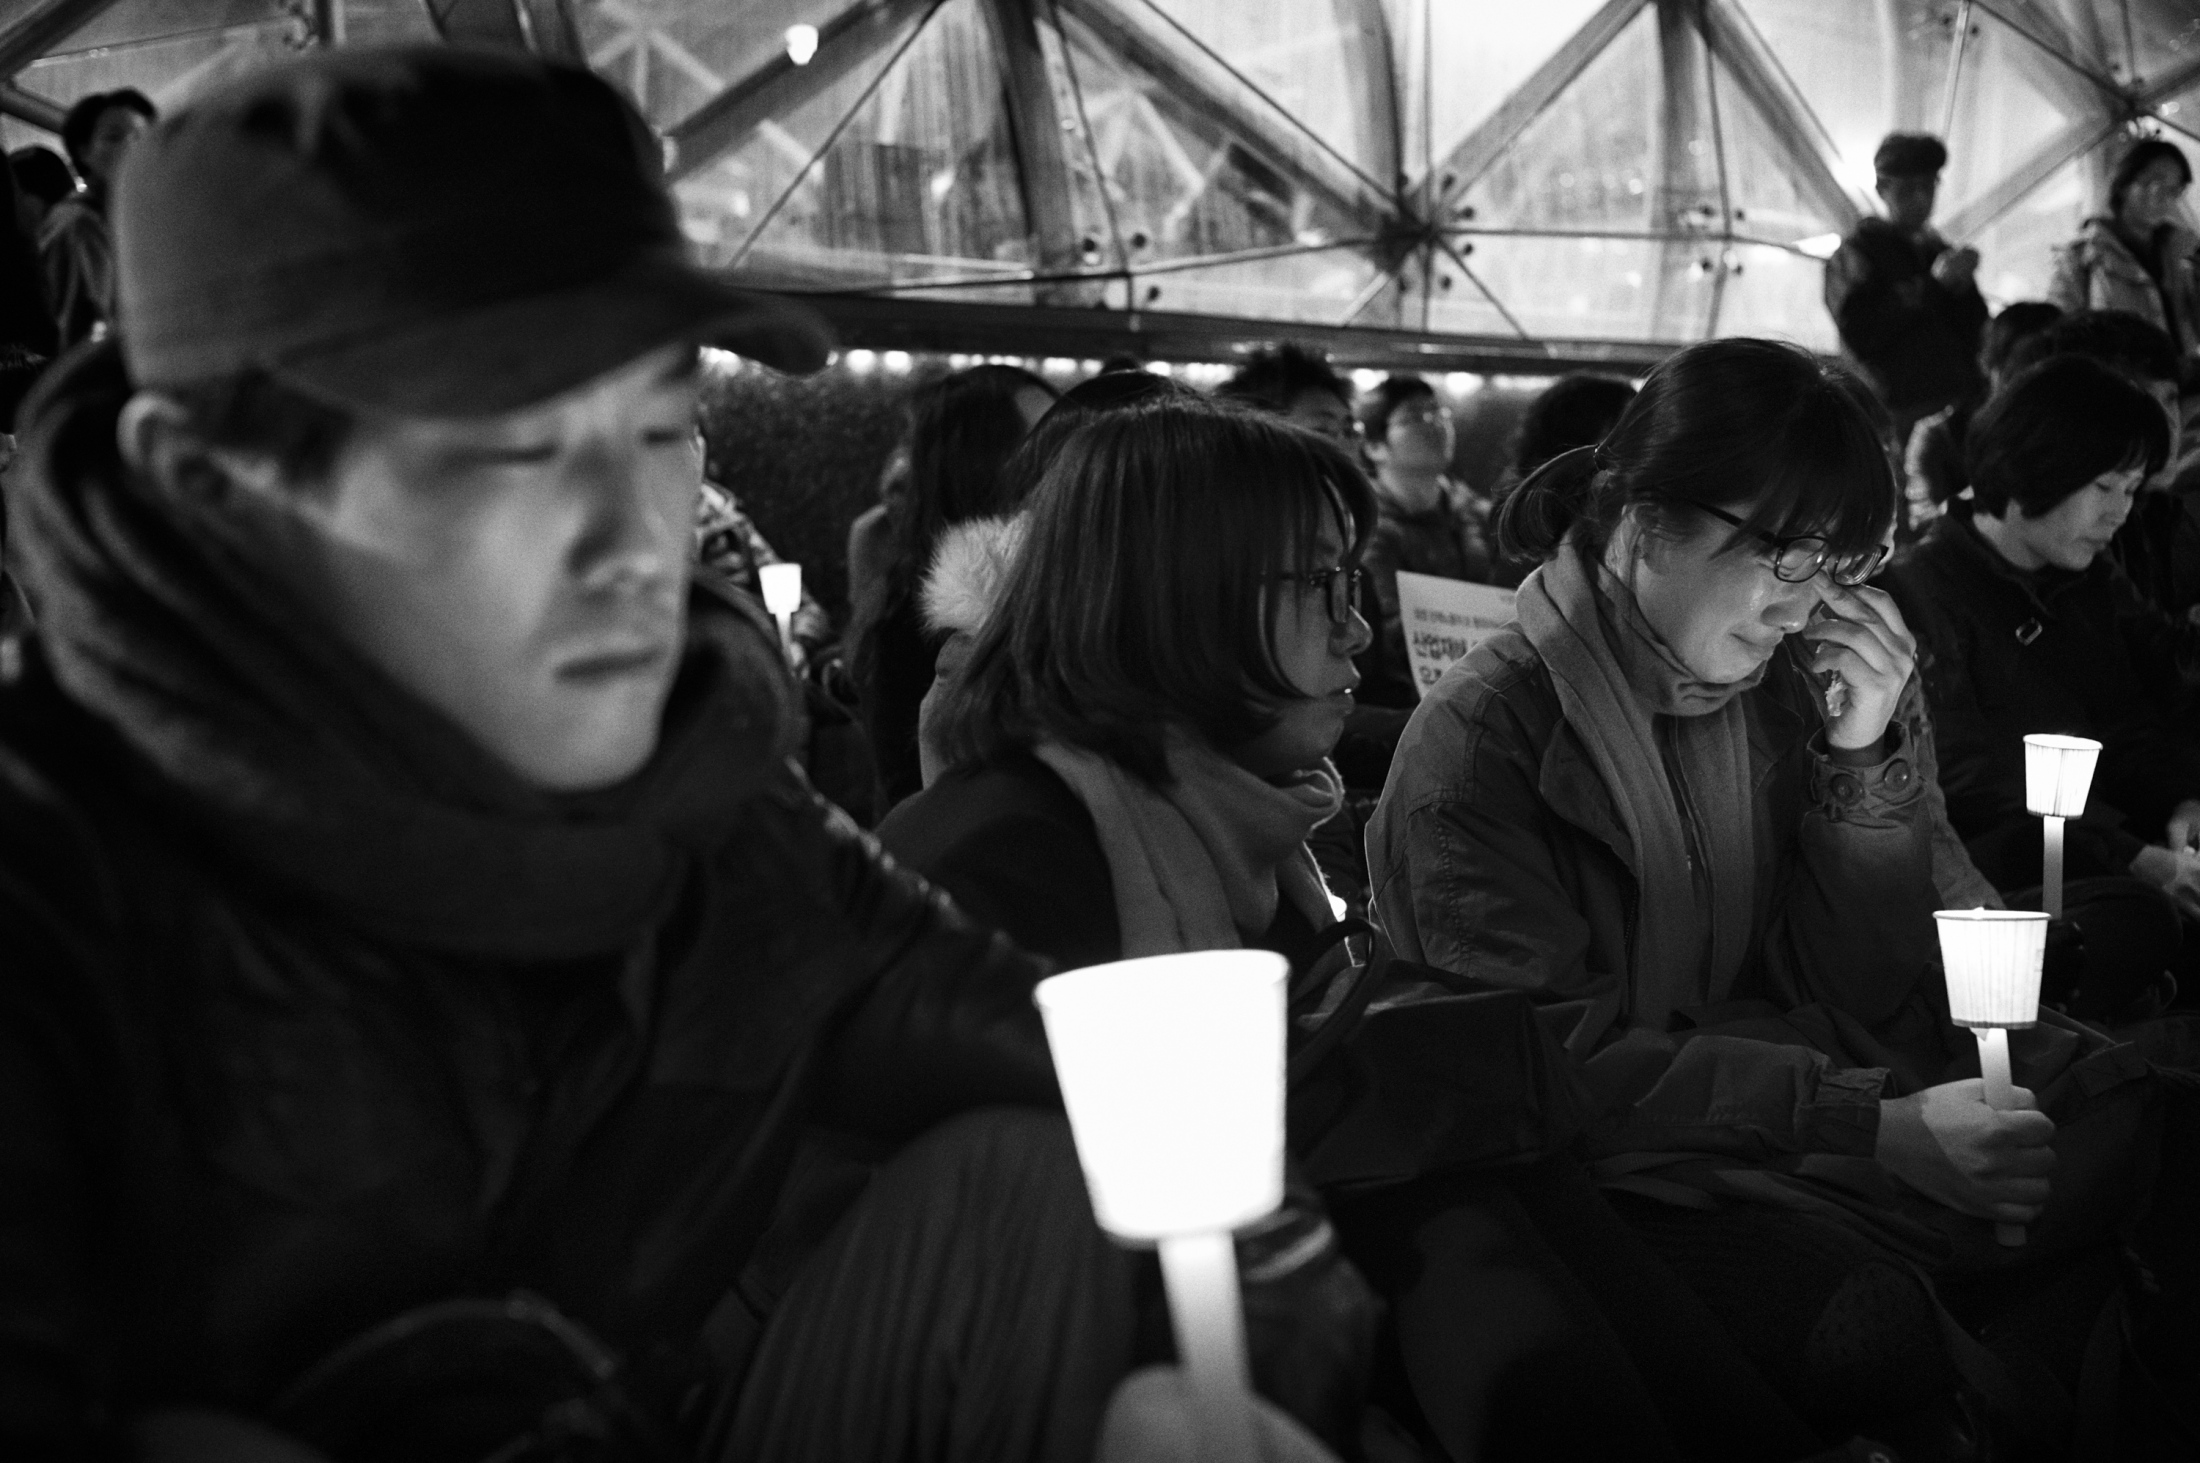 Victims' families and a group of people attend the memorial ritual for the deceased former Samsung Electronics factory workers in front of Samsung Town Headquarters in Seoul, South Korea on Mar. 6, 2013.